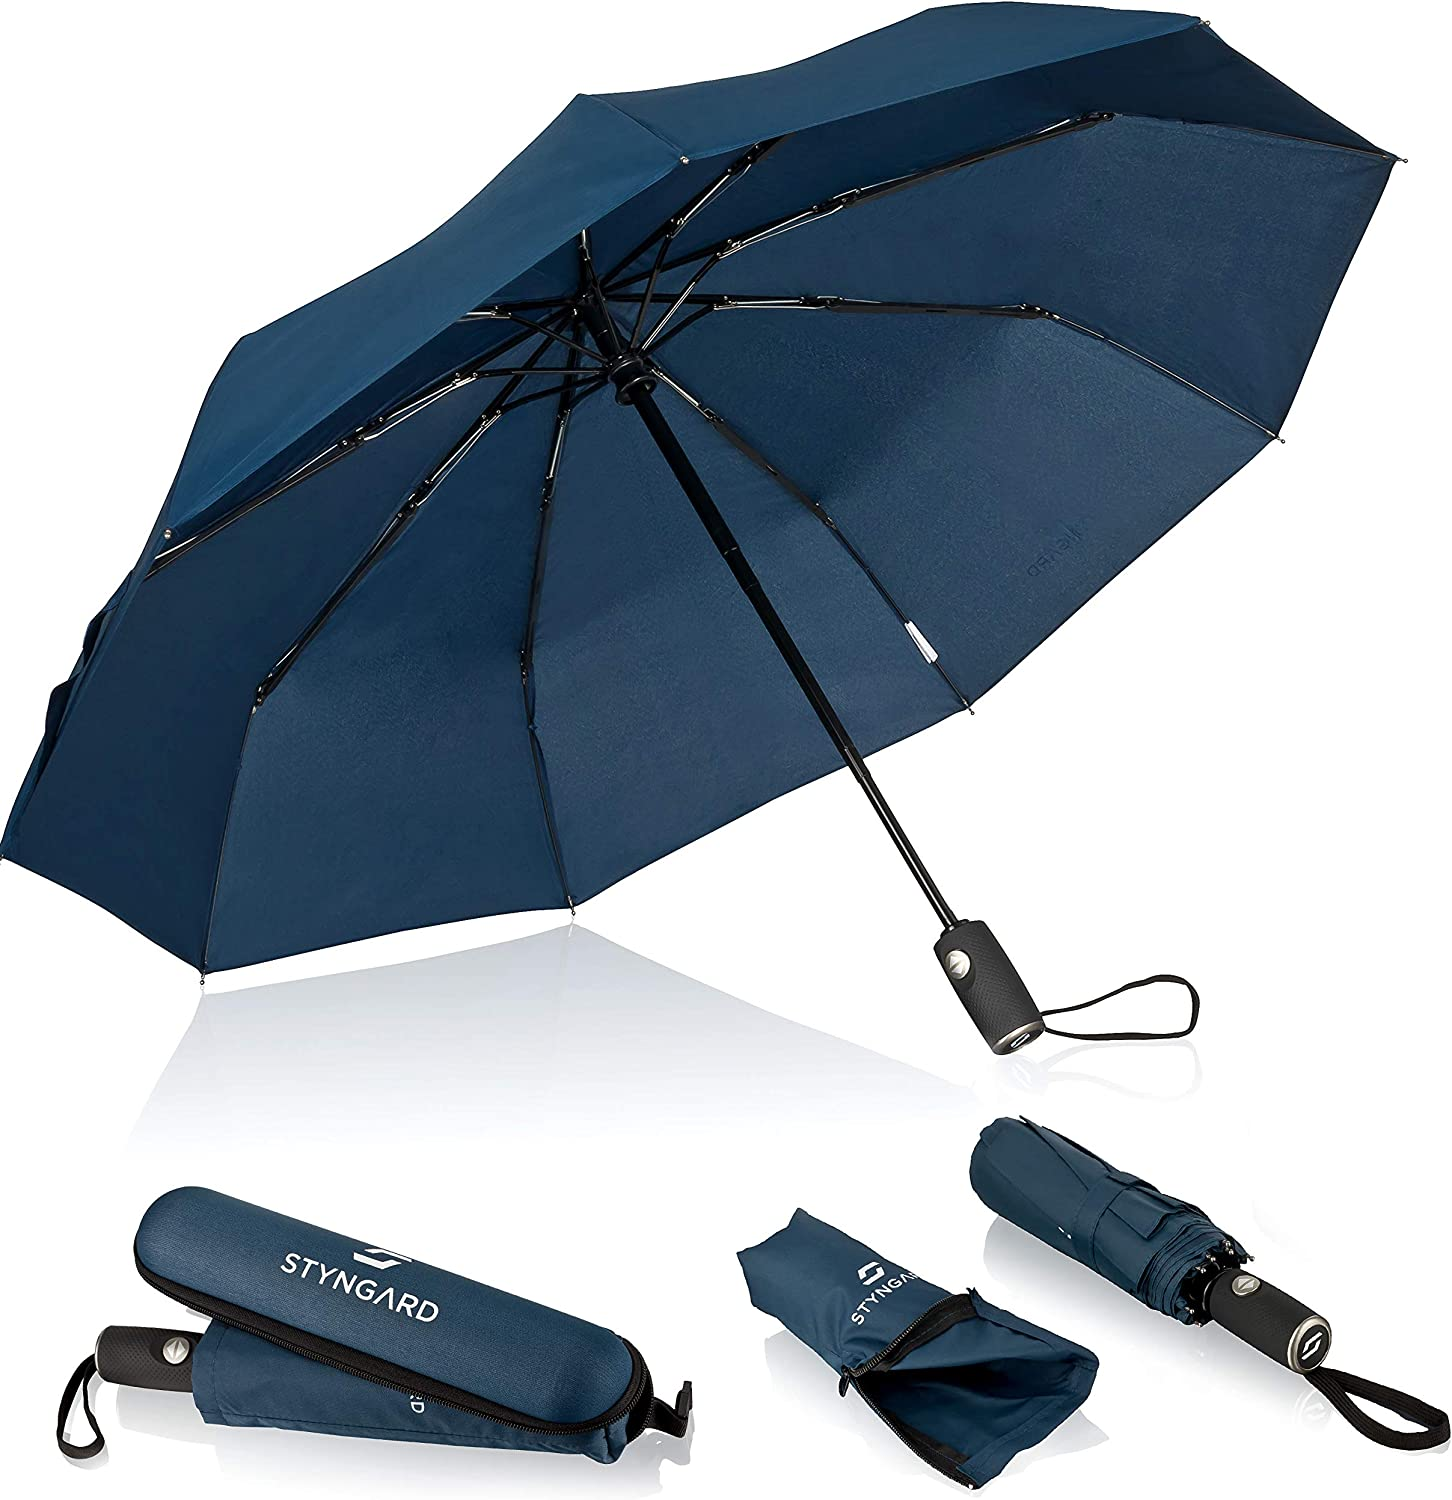 automatic incl umbrella bag and travel case . small and light with Teflon coating black and blue STYNGARD Umbrella storm-proof up to 140 km//h pocket umbrella with automatic open//close